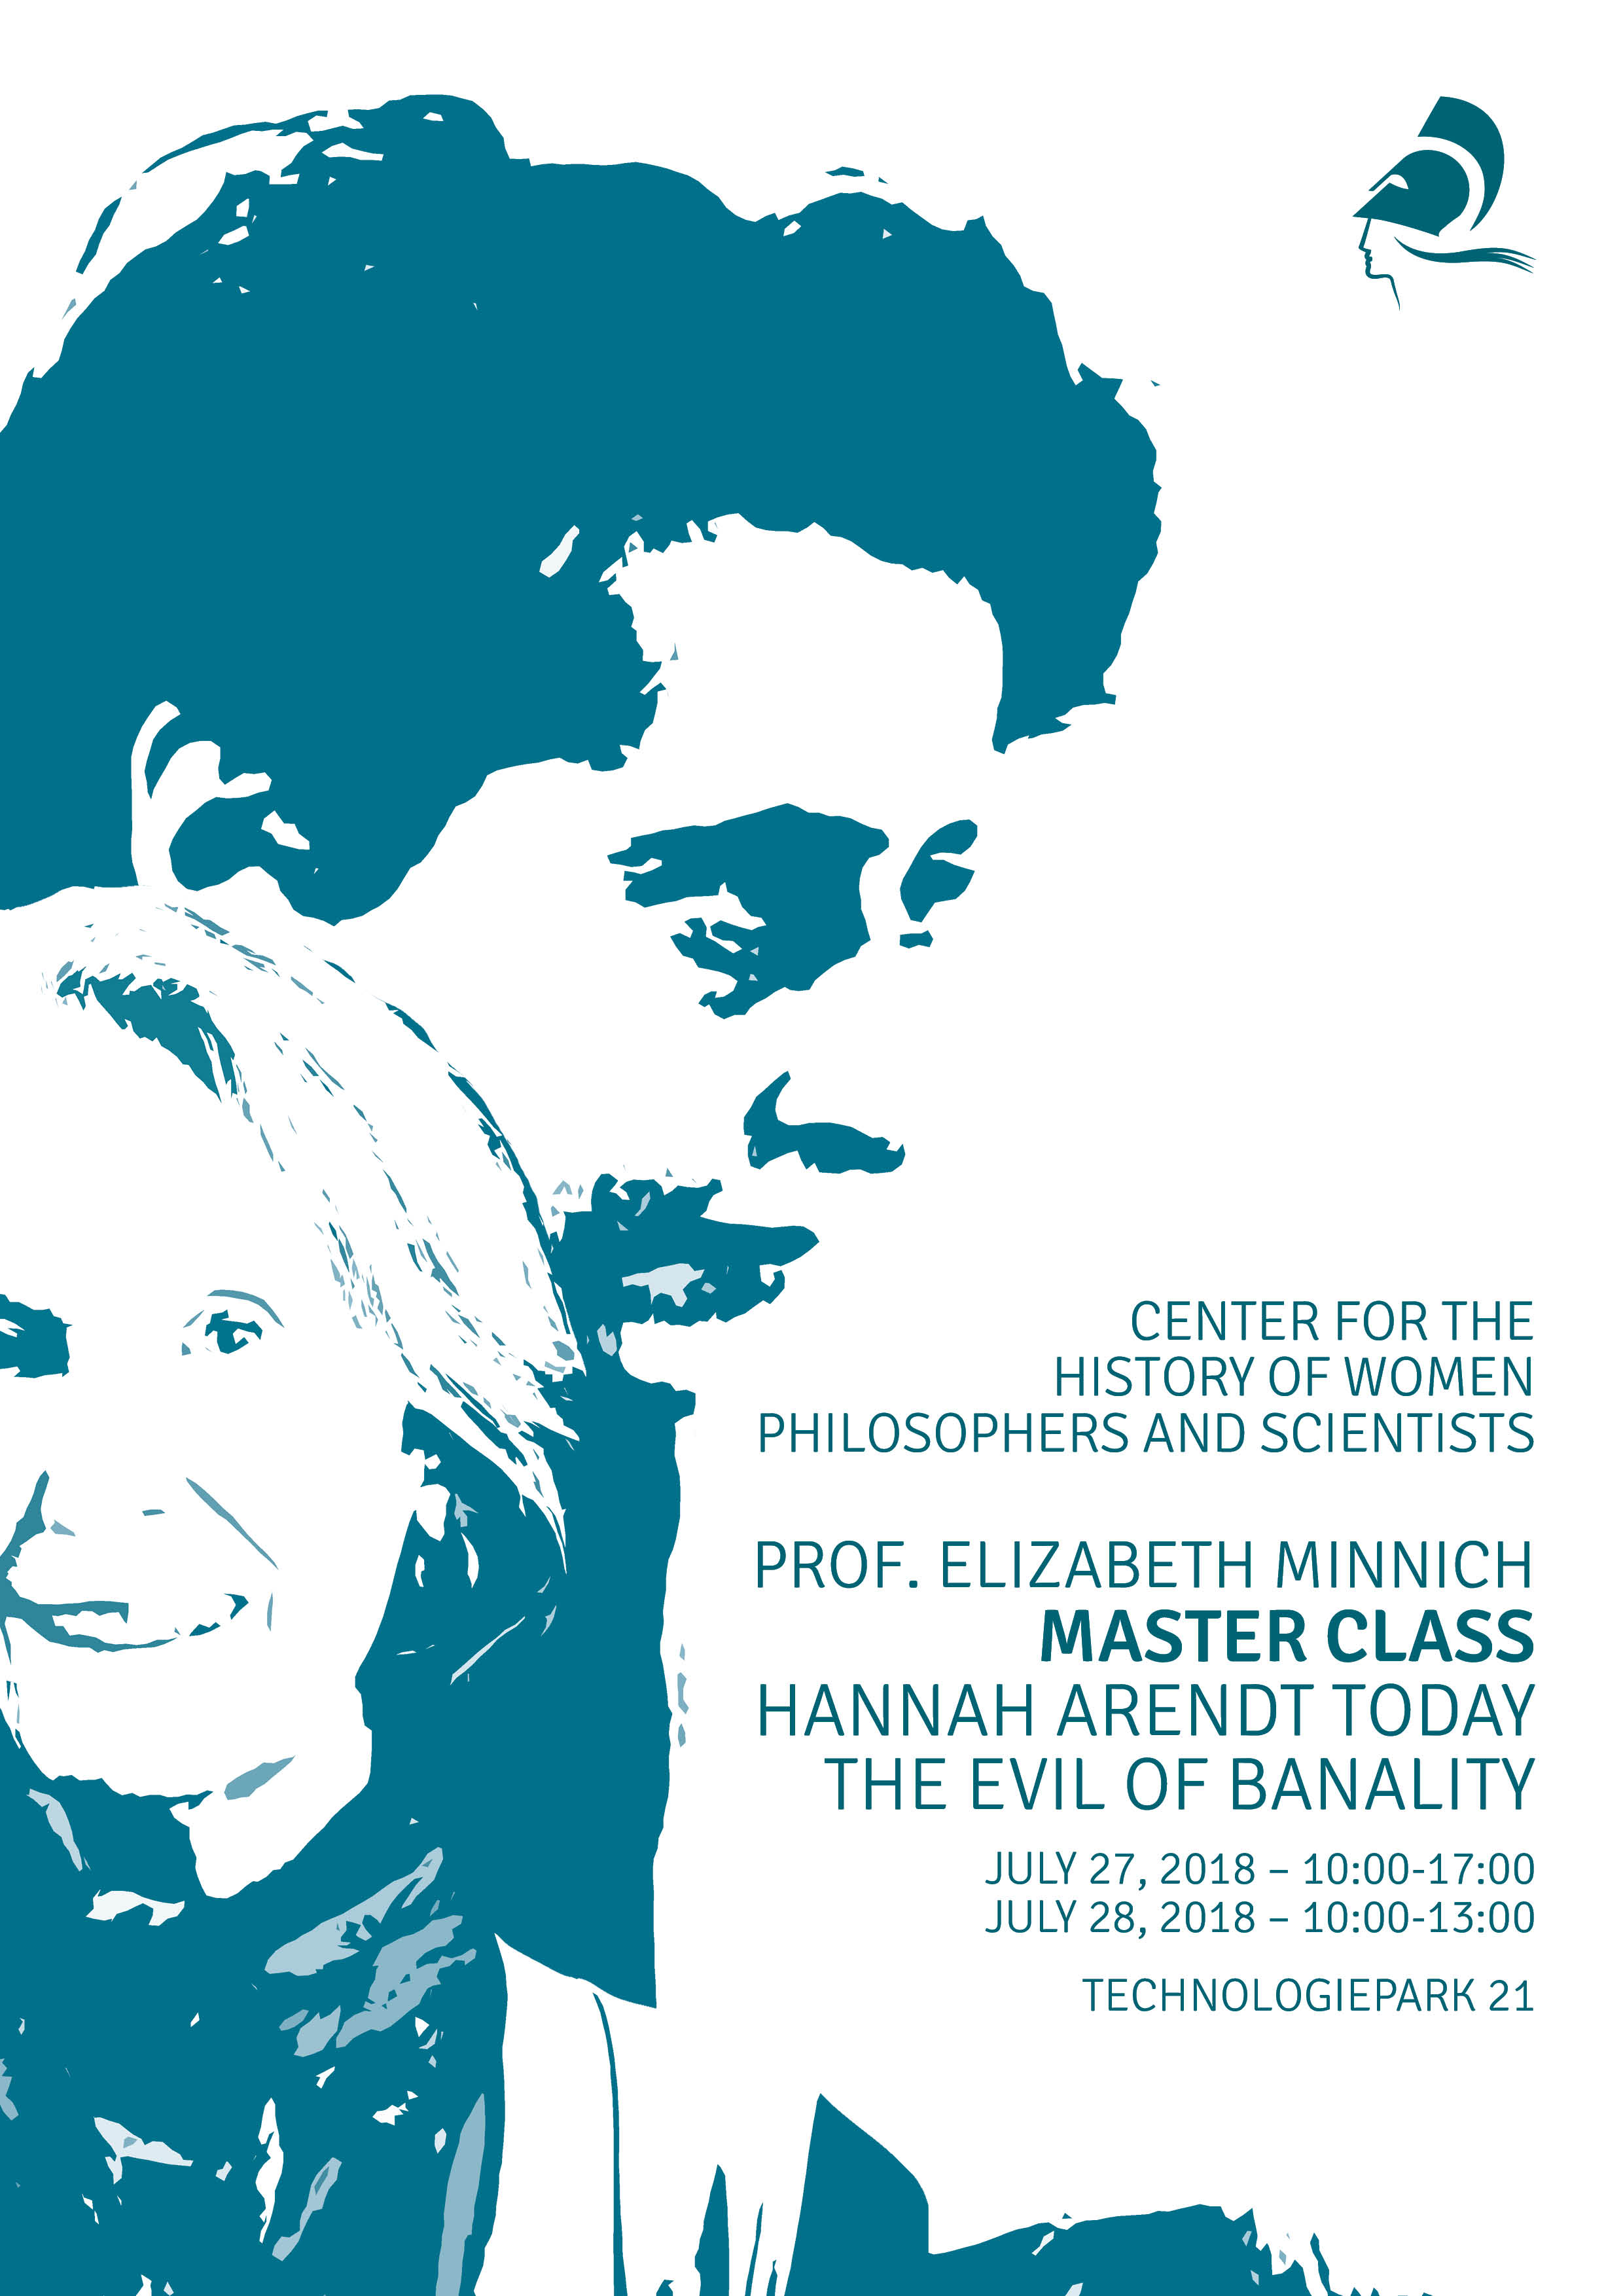 Master Class: Hannah Arendt Today. The Evil of Banality